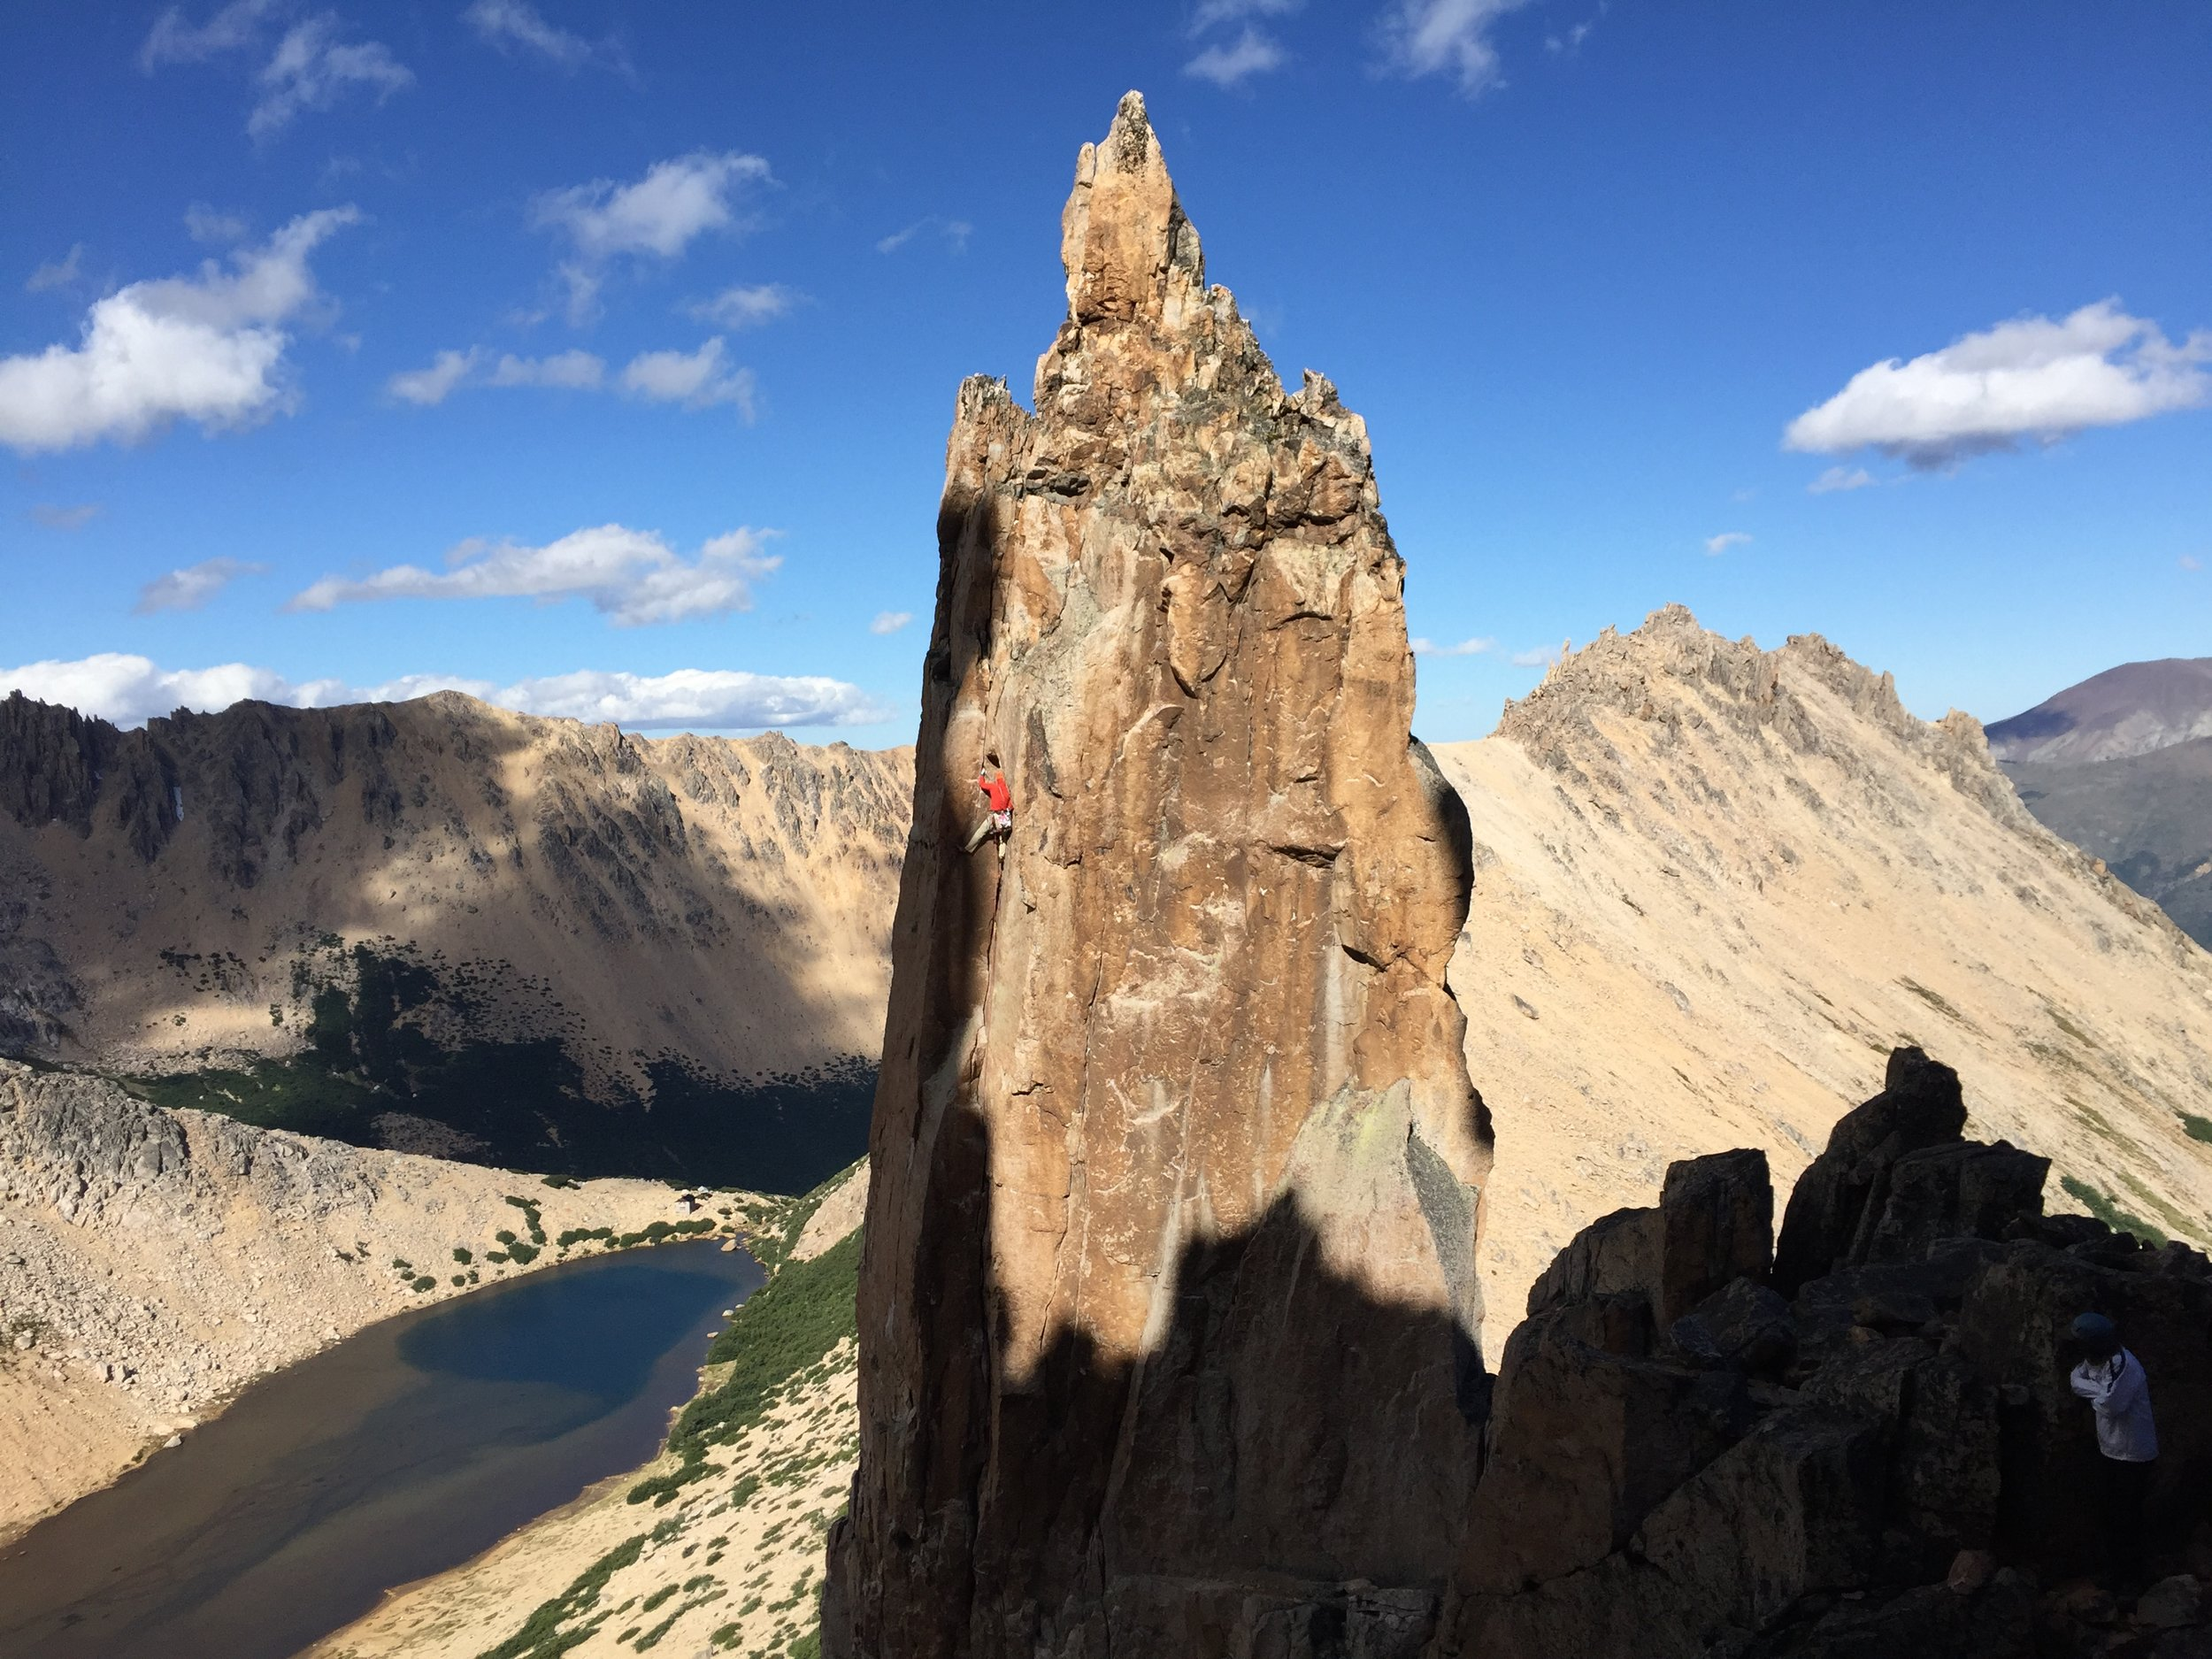 Karah on Del Diedro (5.9) with Laguna Toncek and a tiny Refugio Frey in the background